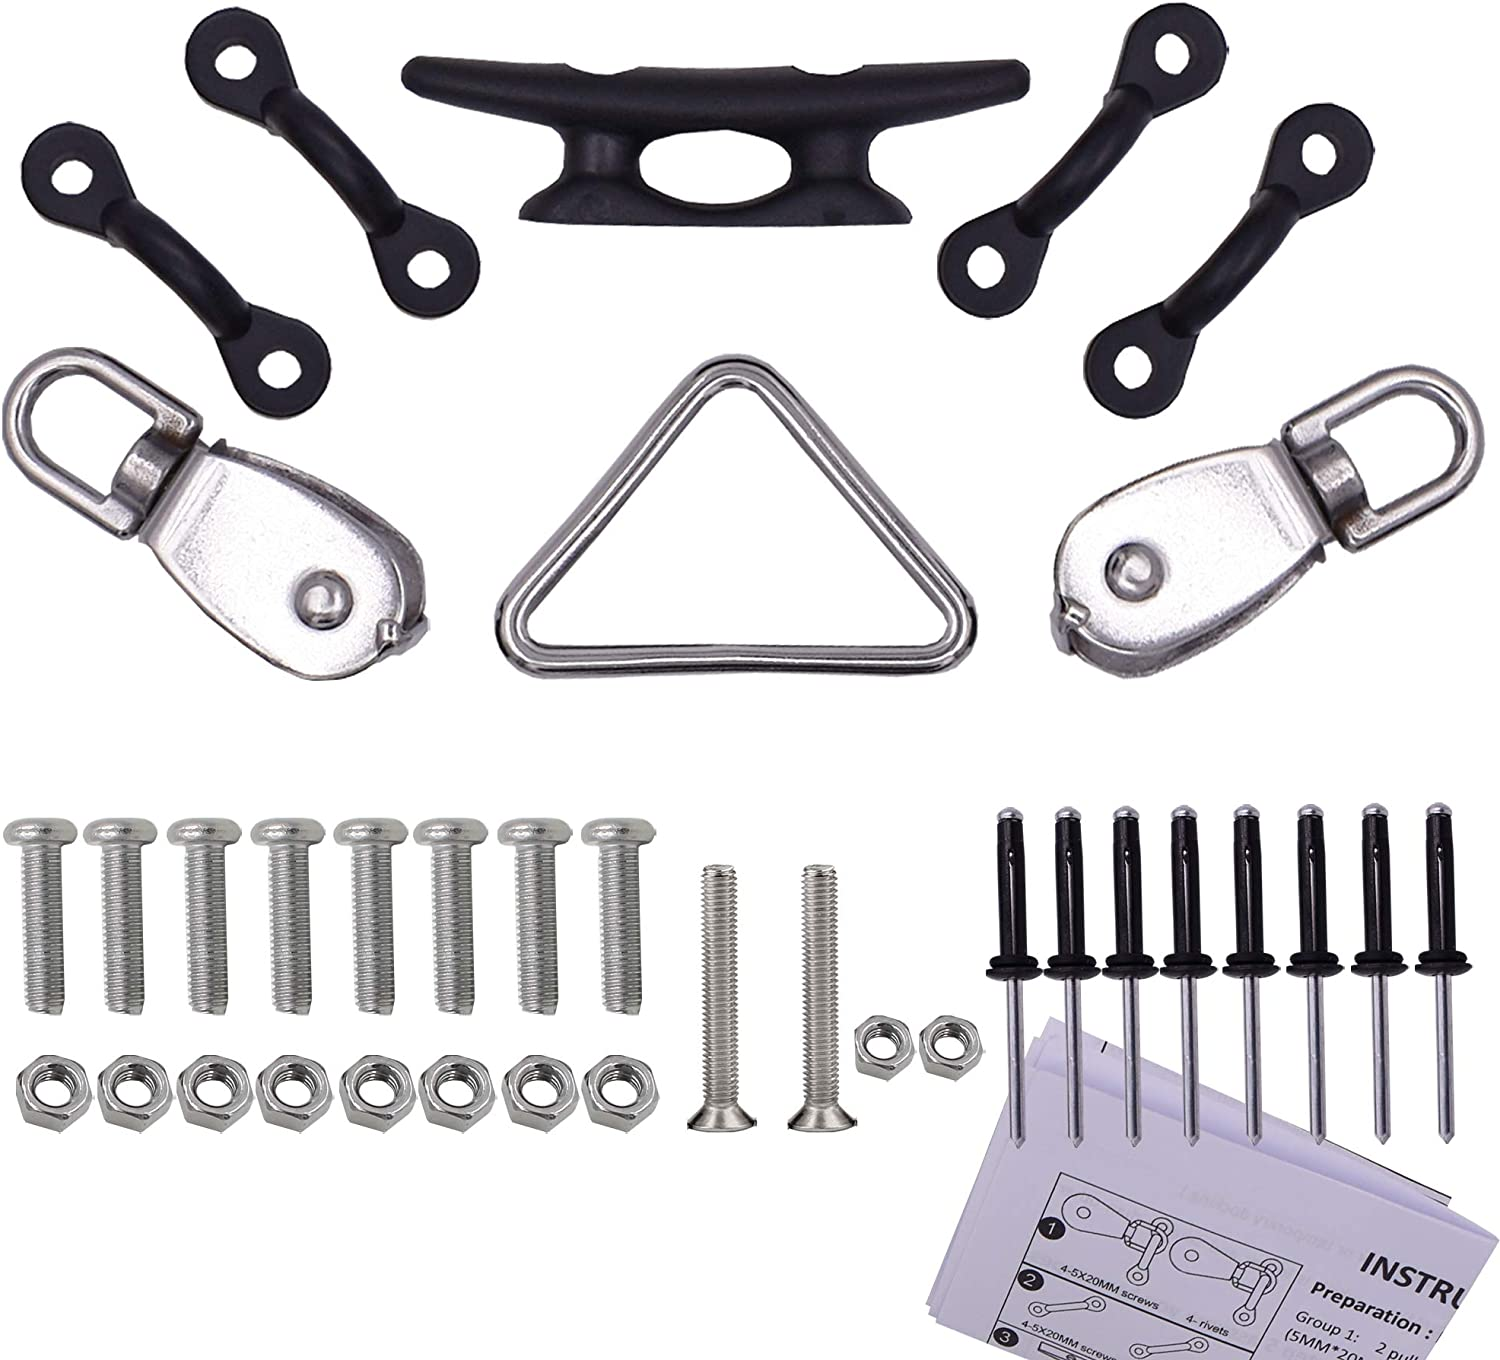 YYST Kayak Canoe Anchor Trolley Kit System Pulley Cleat Pad Eye Ring Rivets - NO Ropes